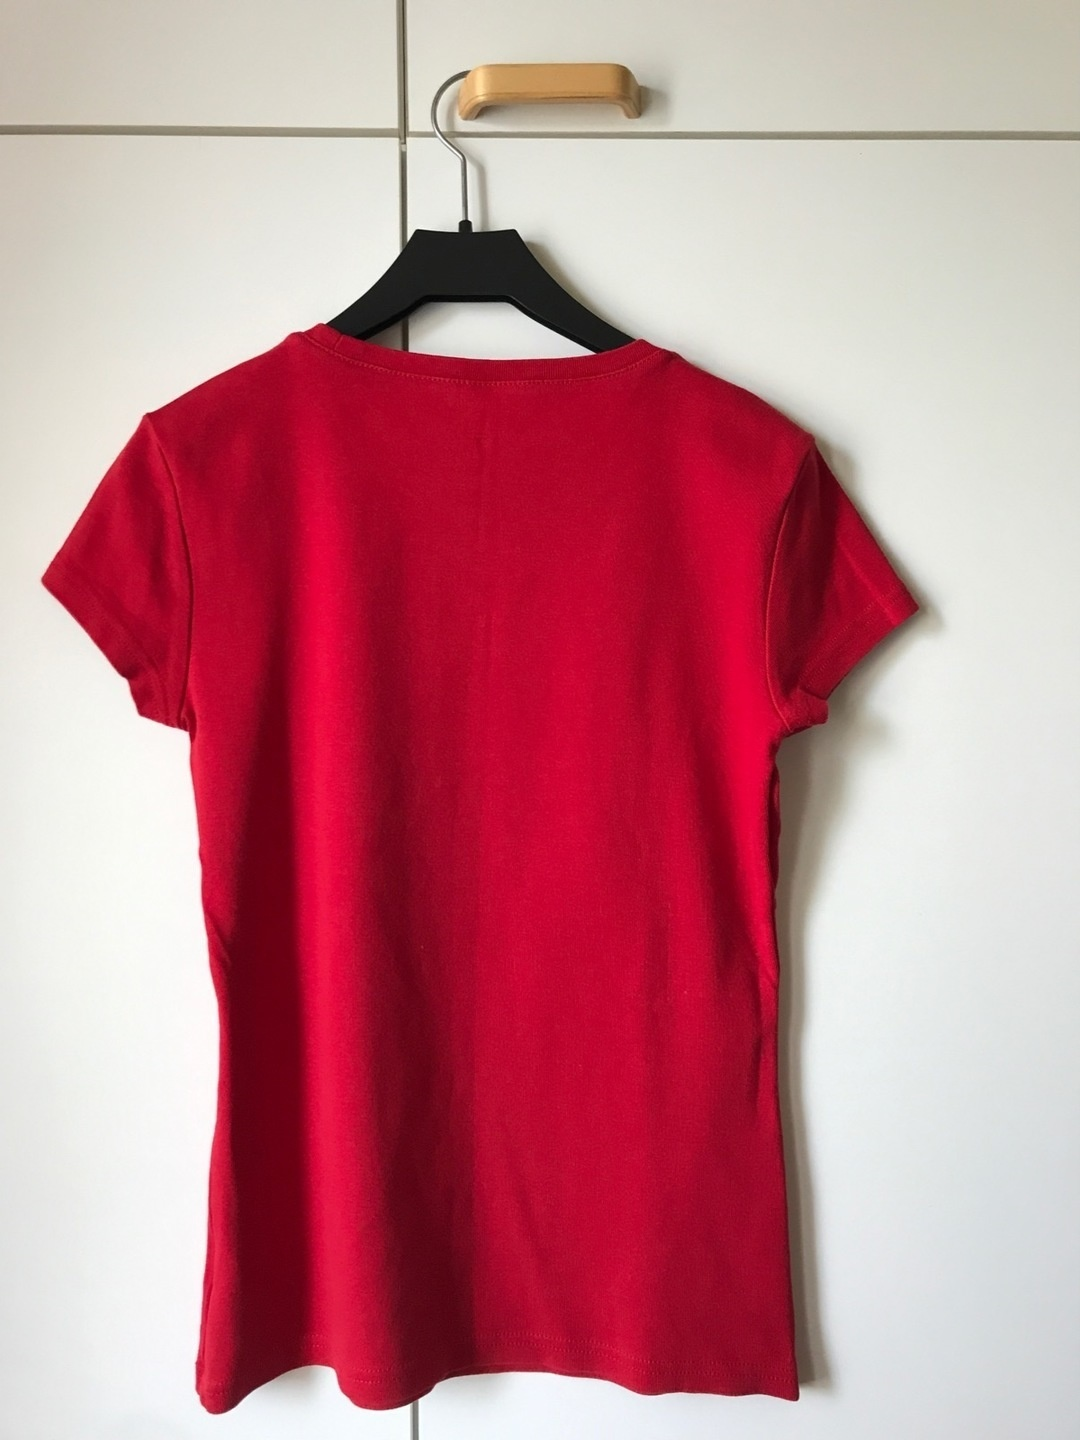 Women's tops & t-shirts - TOMMY HILFIGER photo 2